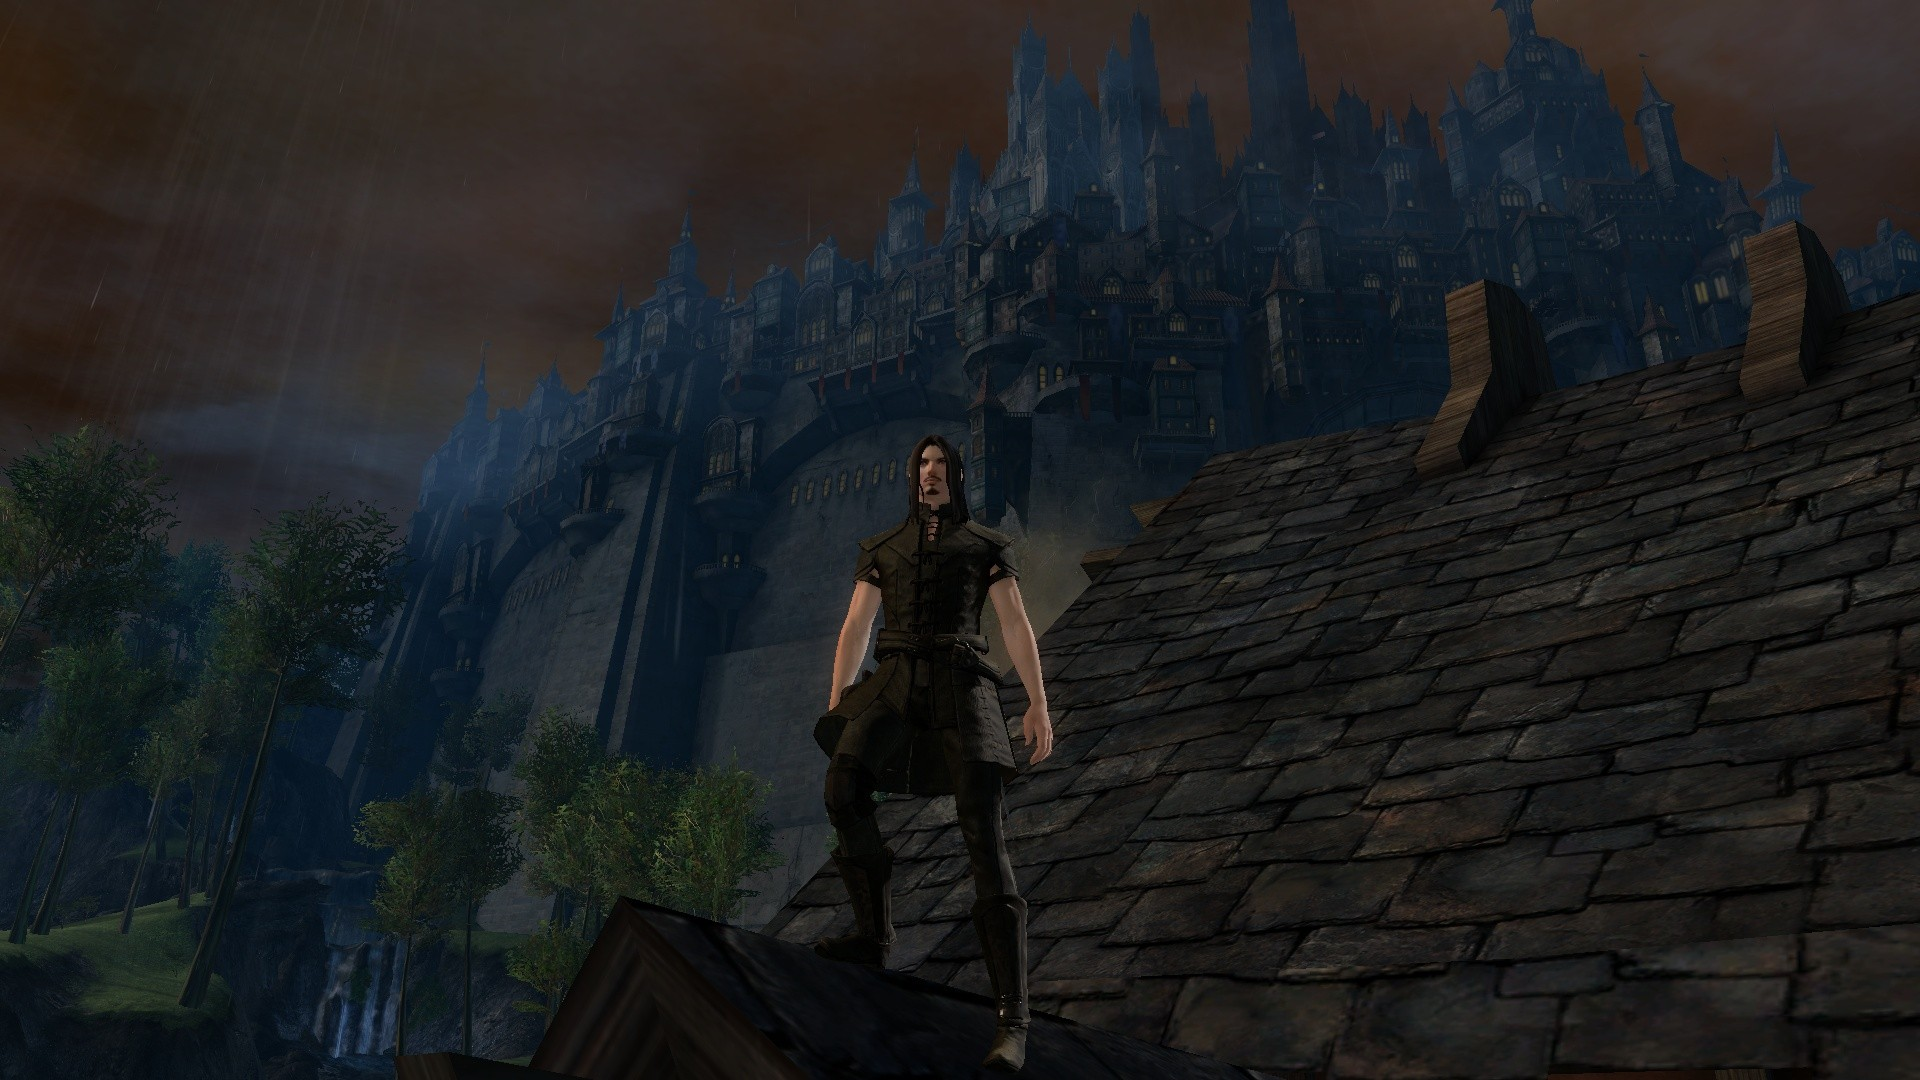 GW2-On the roofs of Divinity Reach